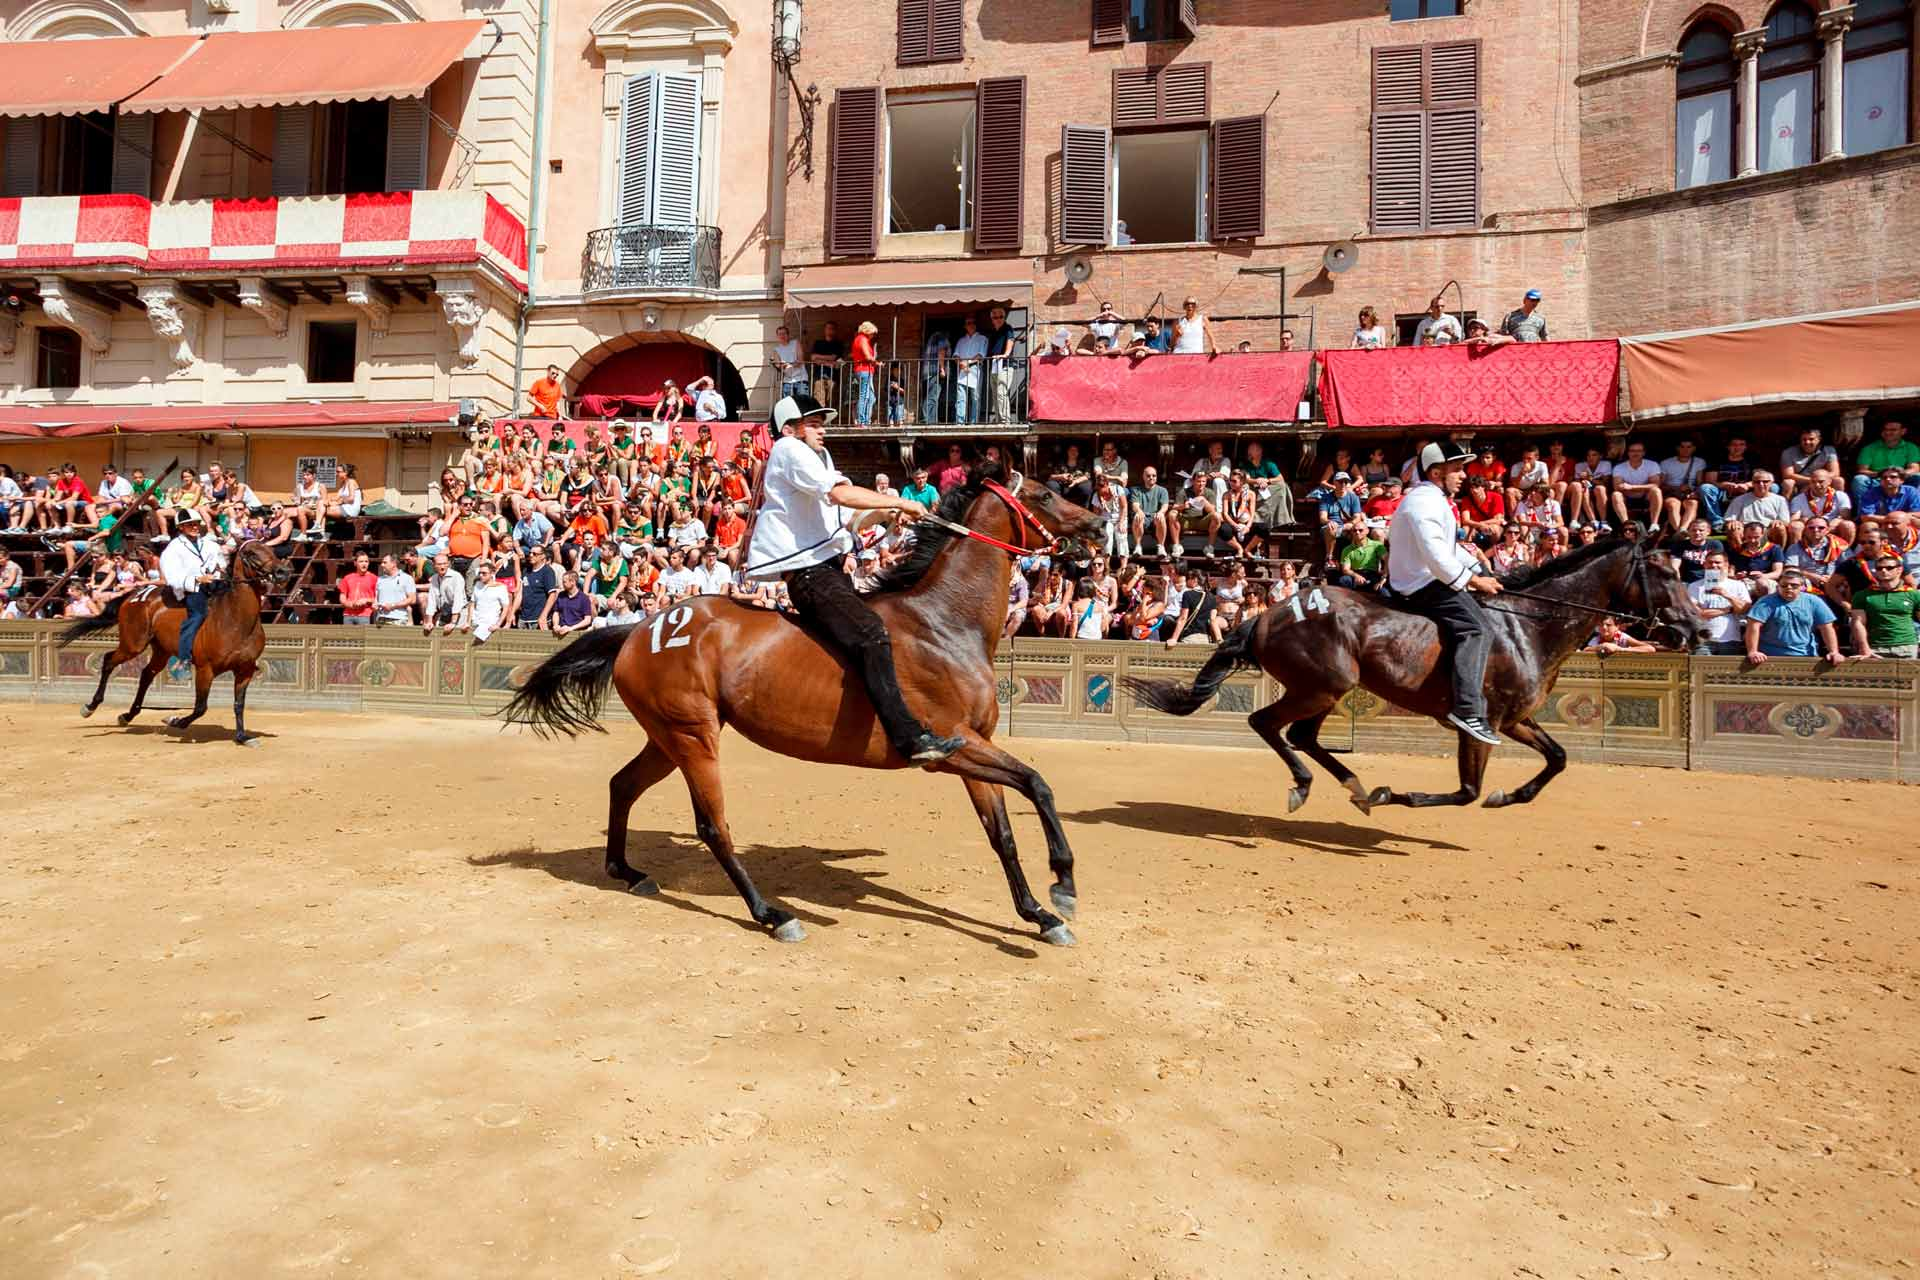 LA TRATTA ? All the horse selection heats foreseen by the program follow one another on the track. Each single jockey can also try more than one horse.